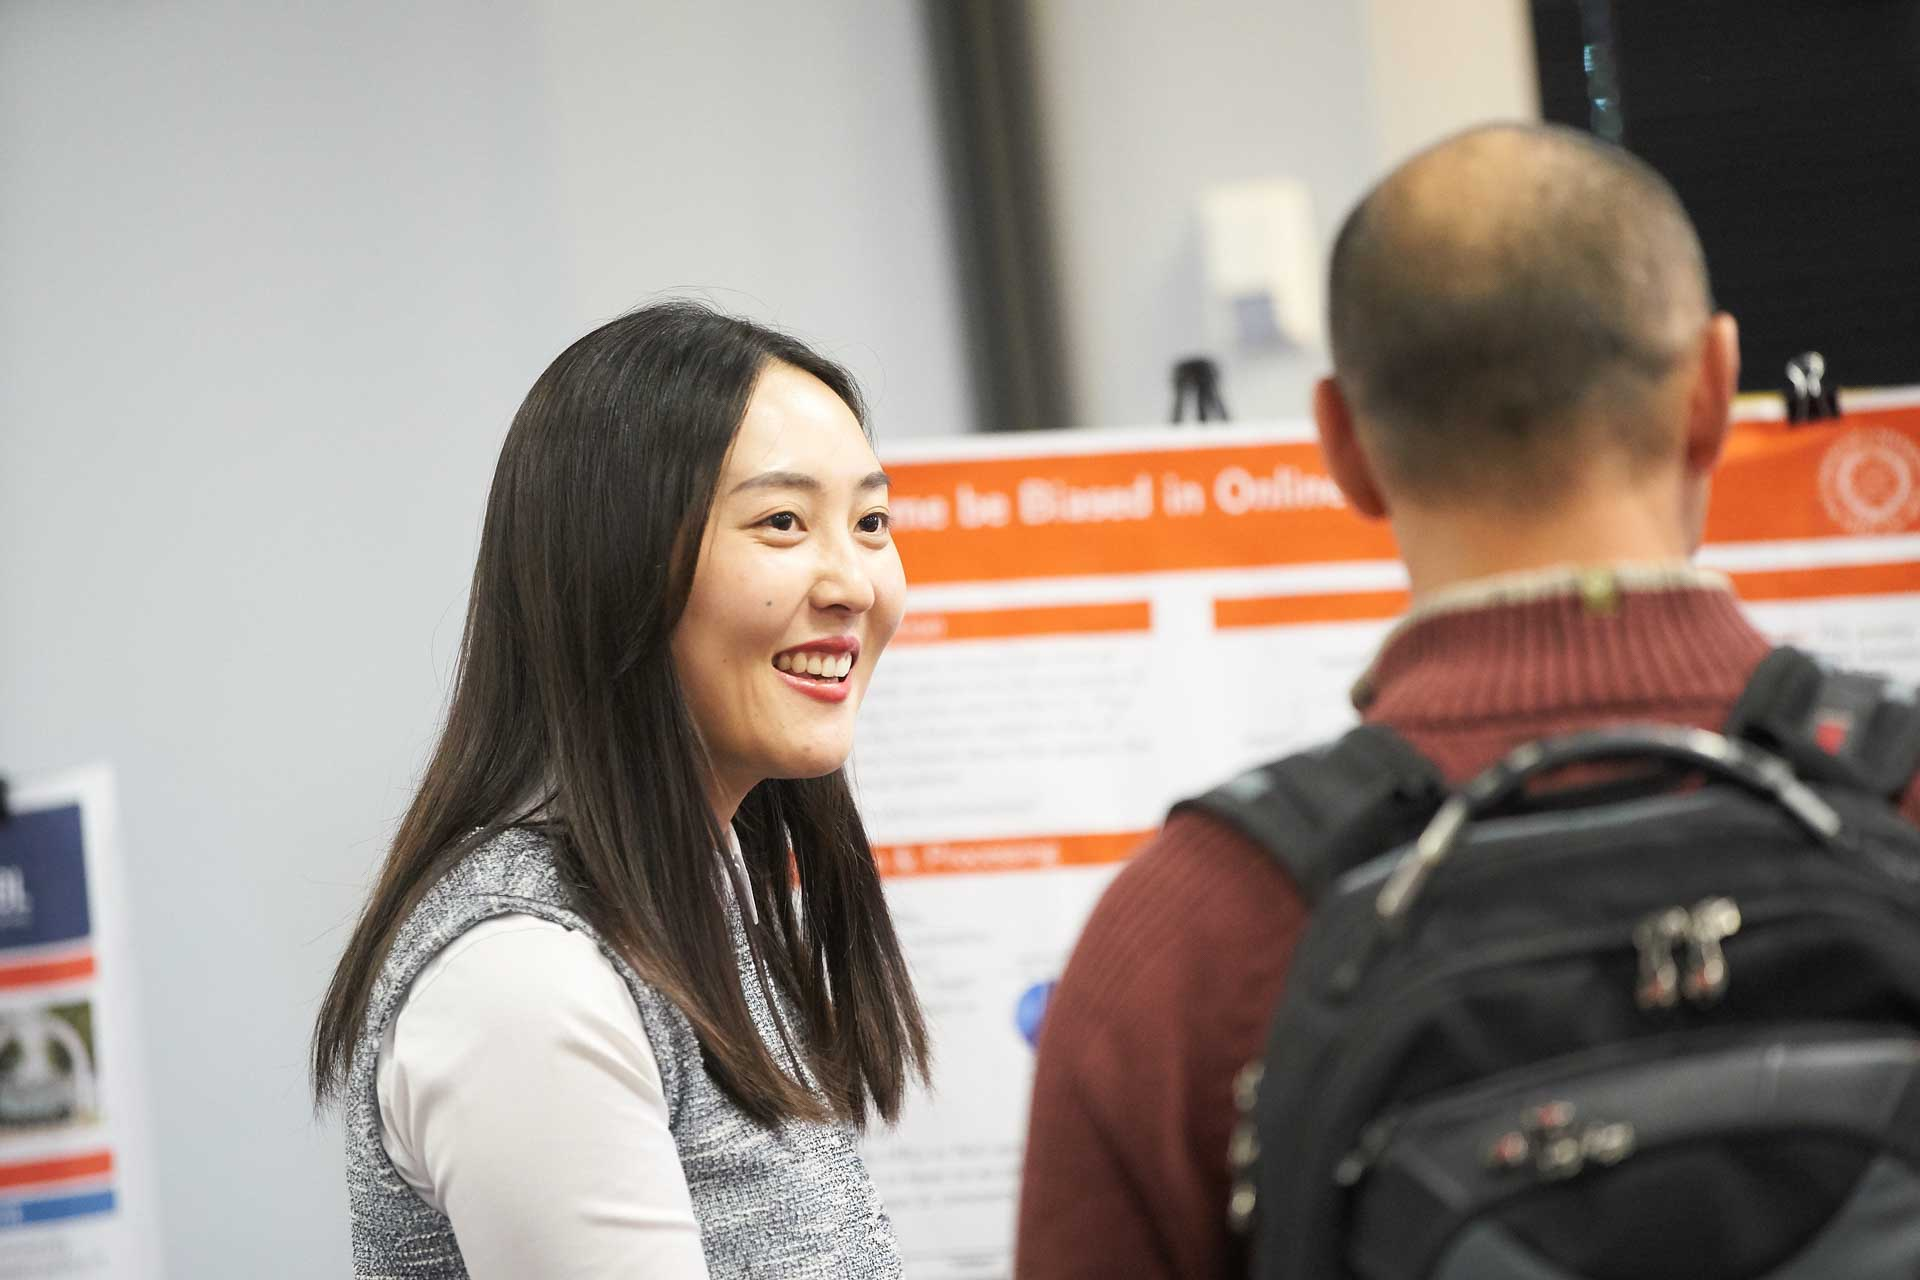 Qunfang Wu explains her poster on the fear of crime online